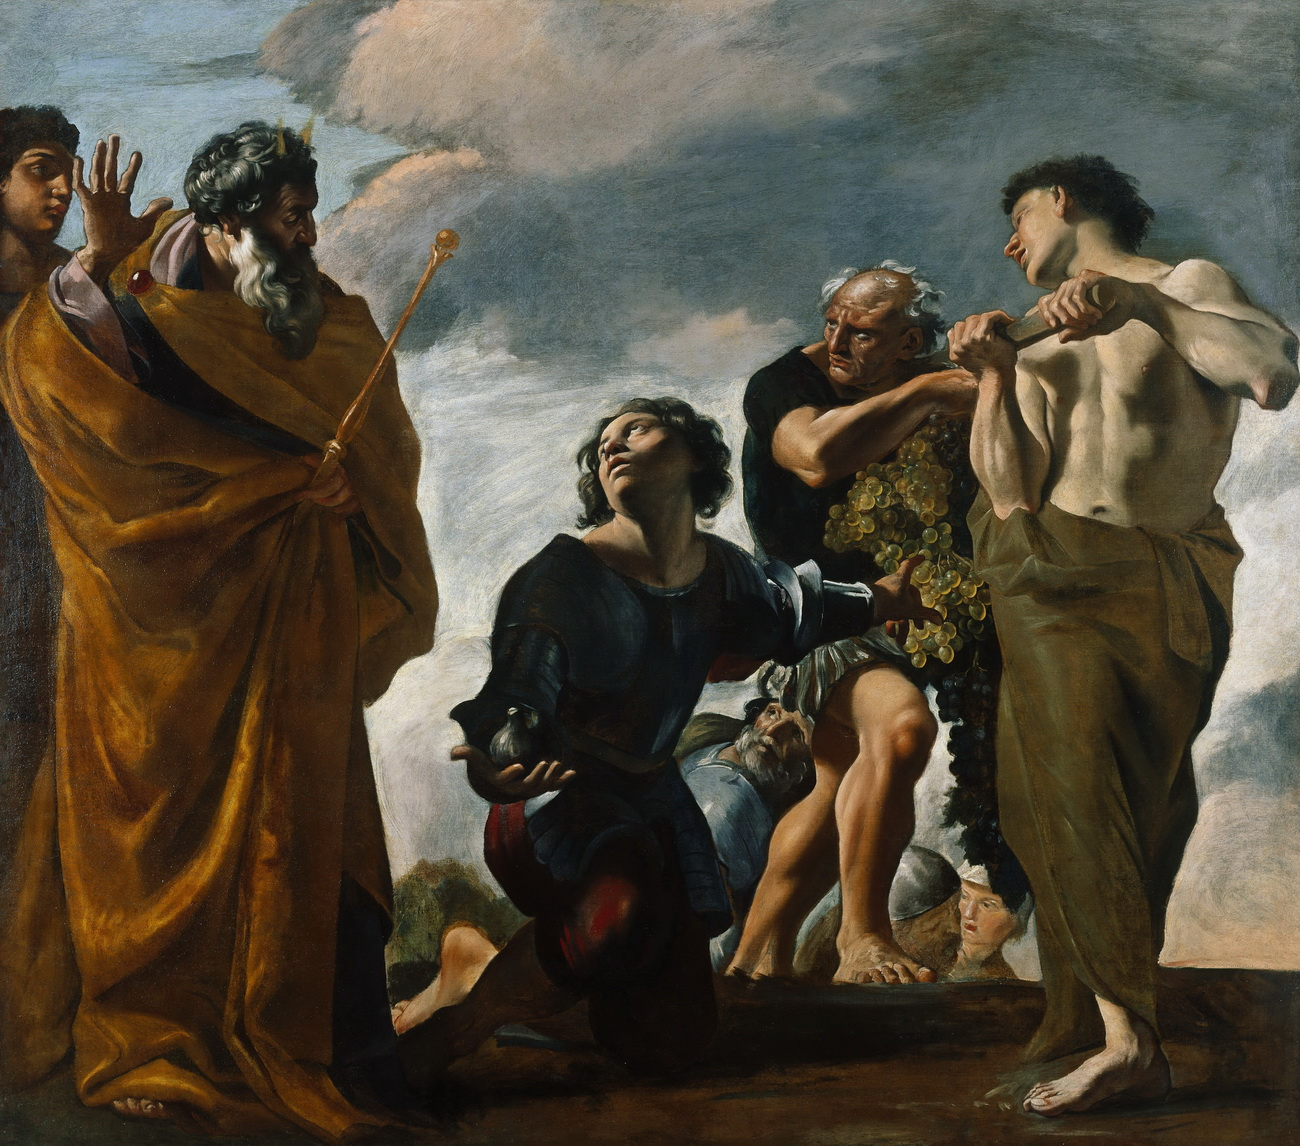 Giovanni Lanfranco - Moses and the Messengers from Canaan 1621-24-1300